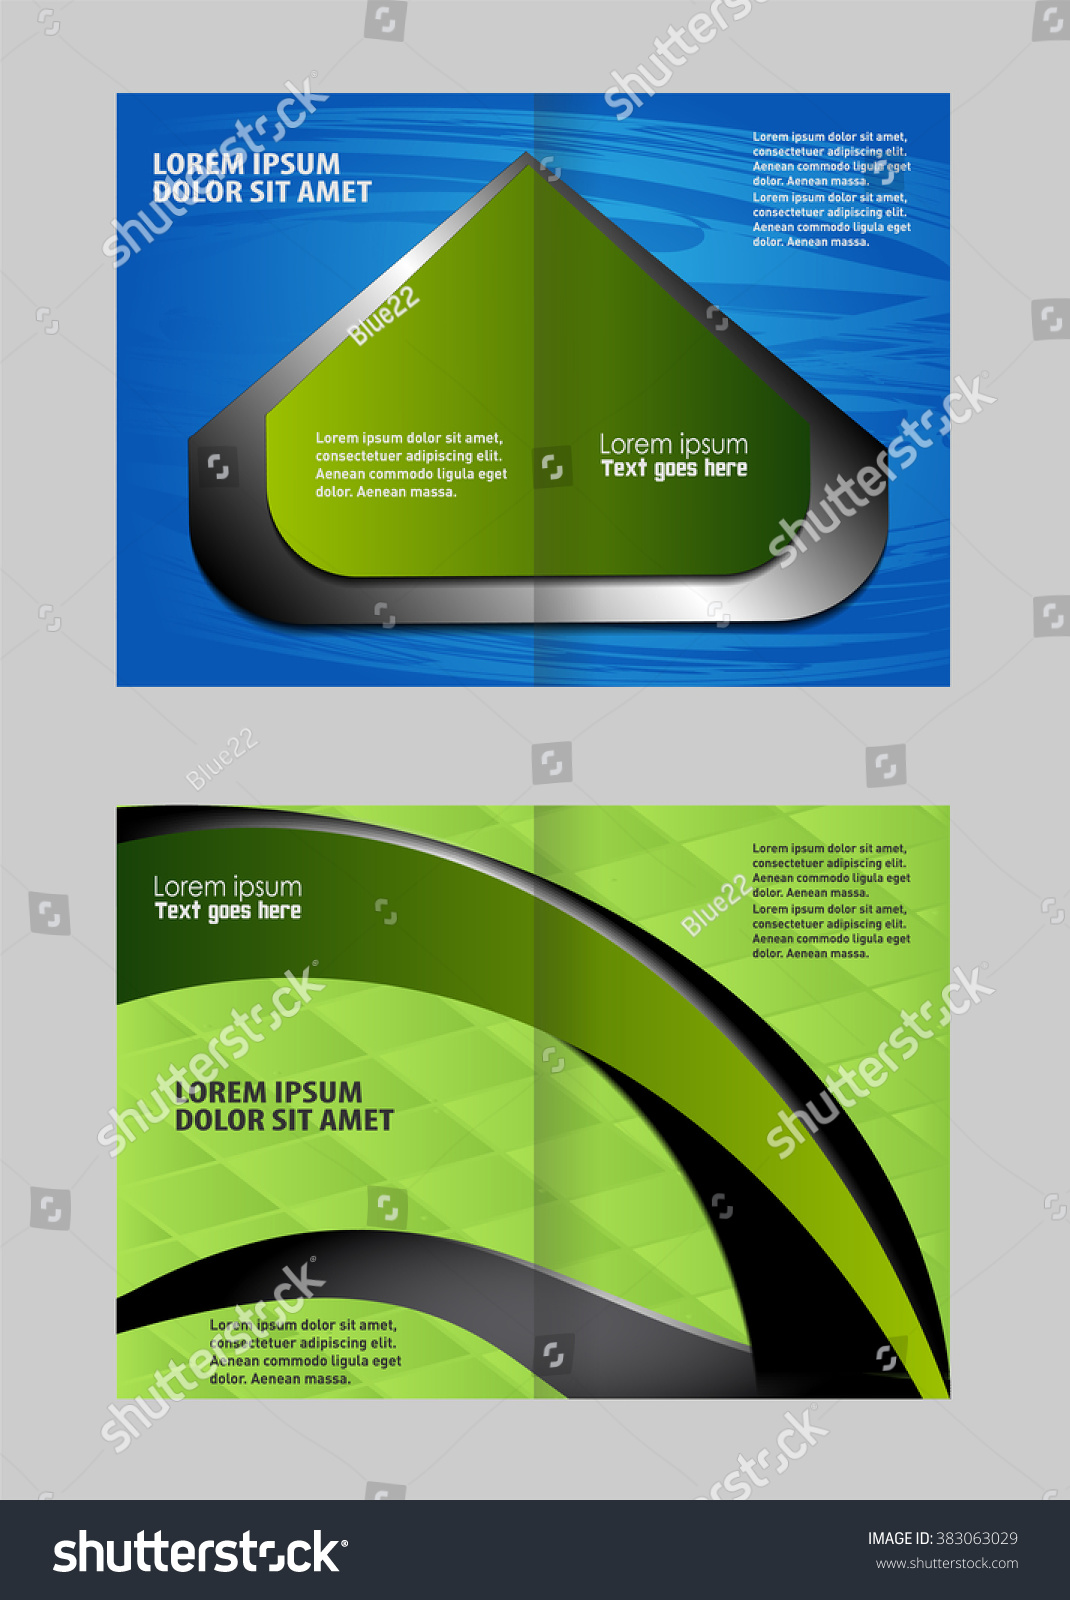 Template advertising brochure stock vector 383063029 for Advertising brochure template